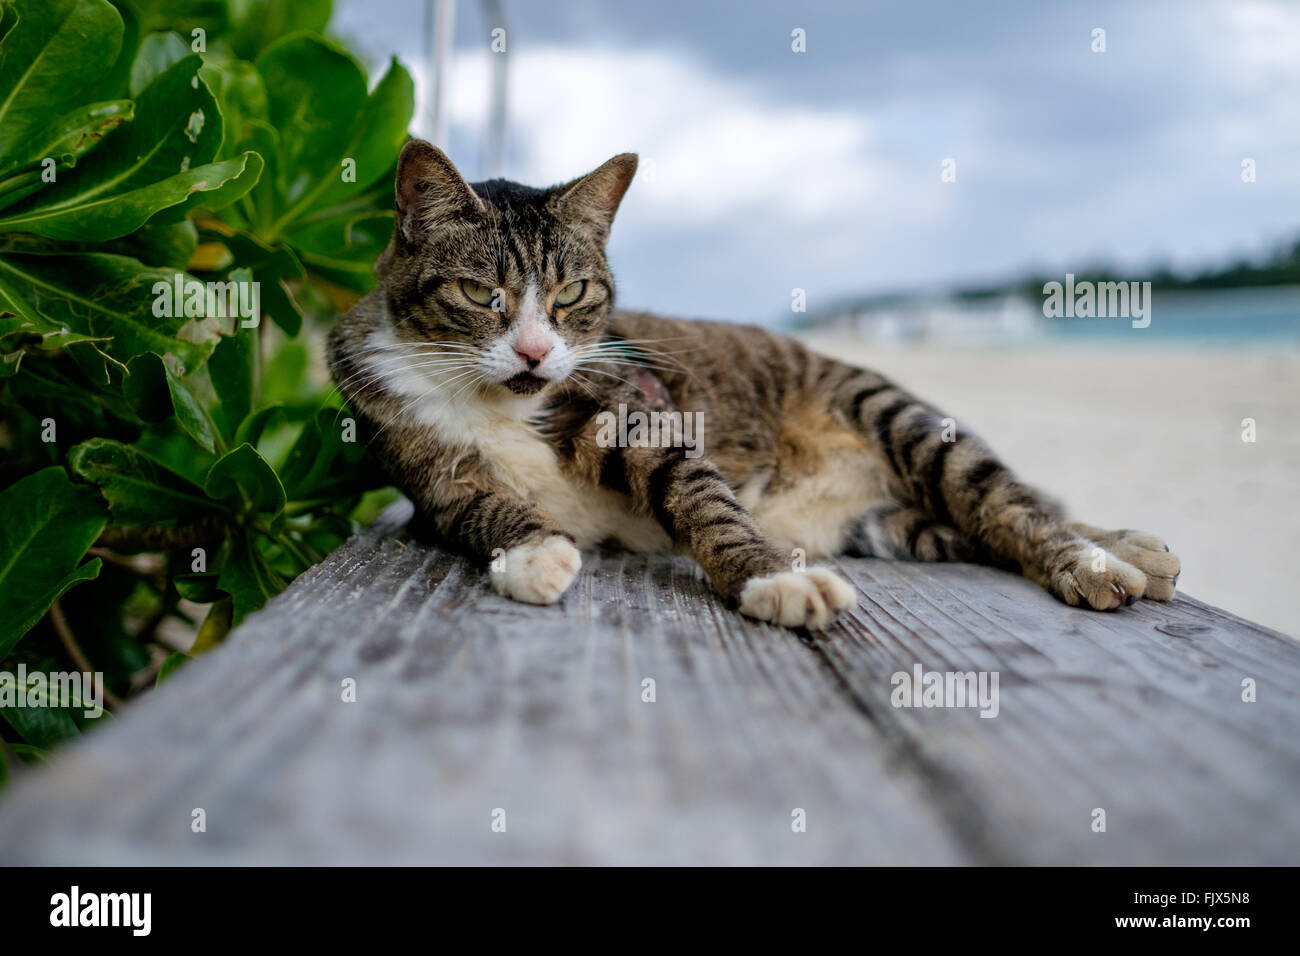 Portrait Of Cat Sitting On Wooden Plank At Beach - Stock Image